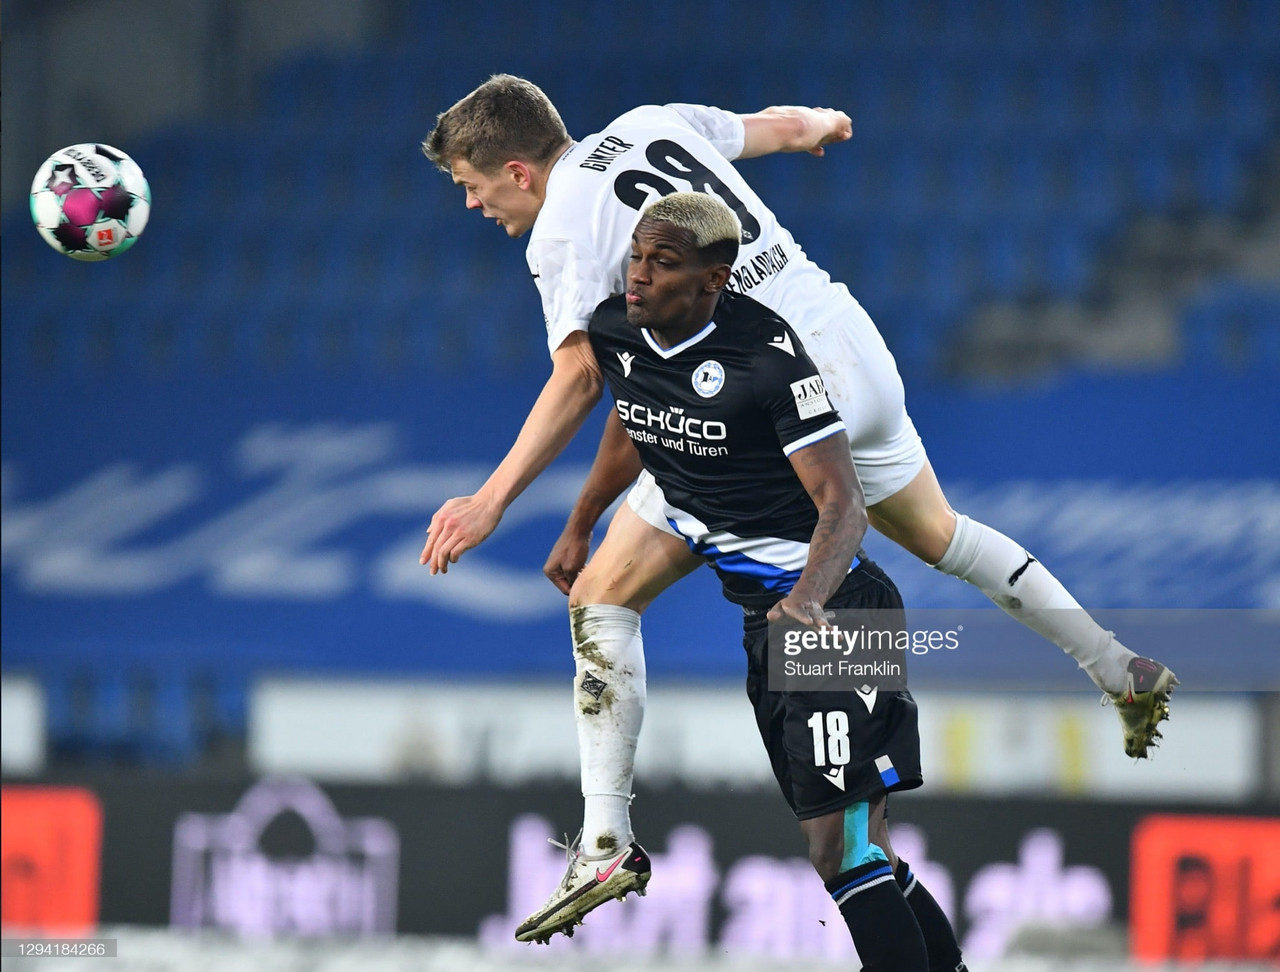 Borussia Mönchengladbach vs Arminia Bielefeld preview: How to watch, kick-off time, team news, predicted lineups, and ones to watch